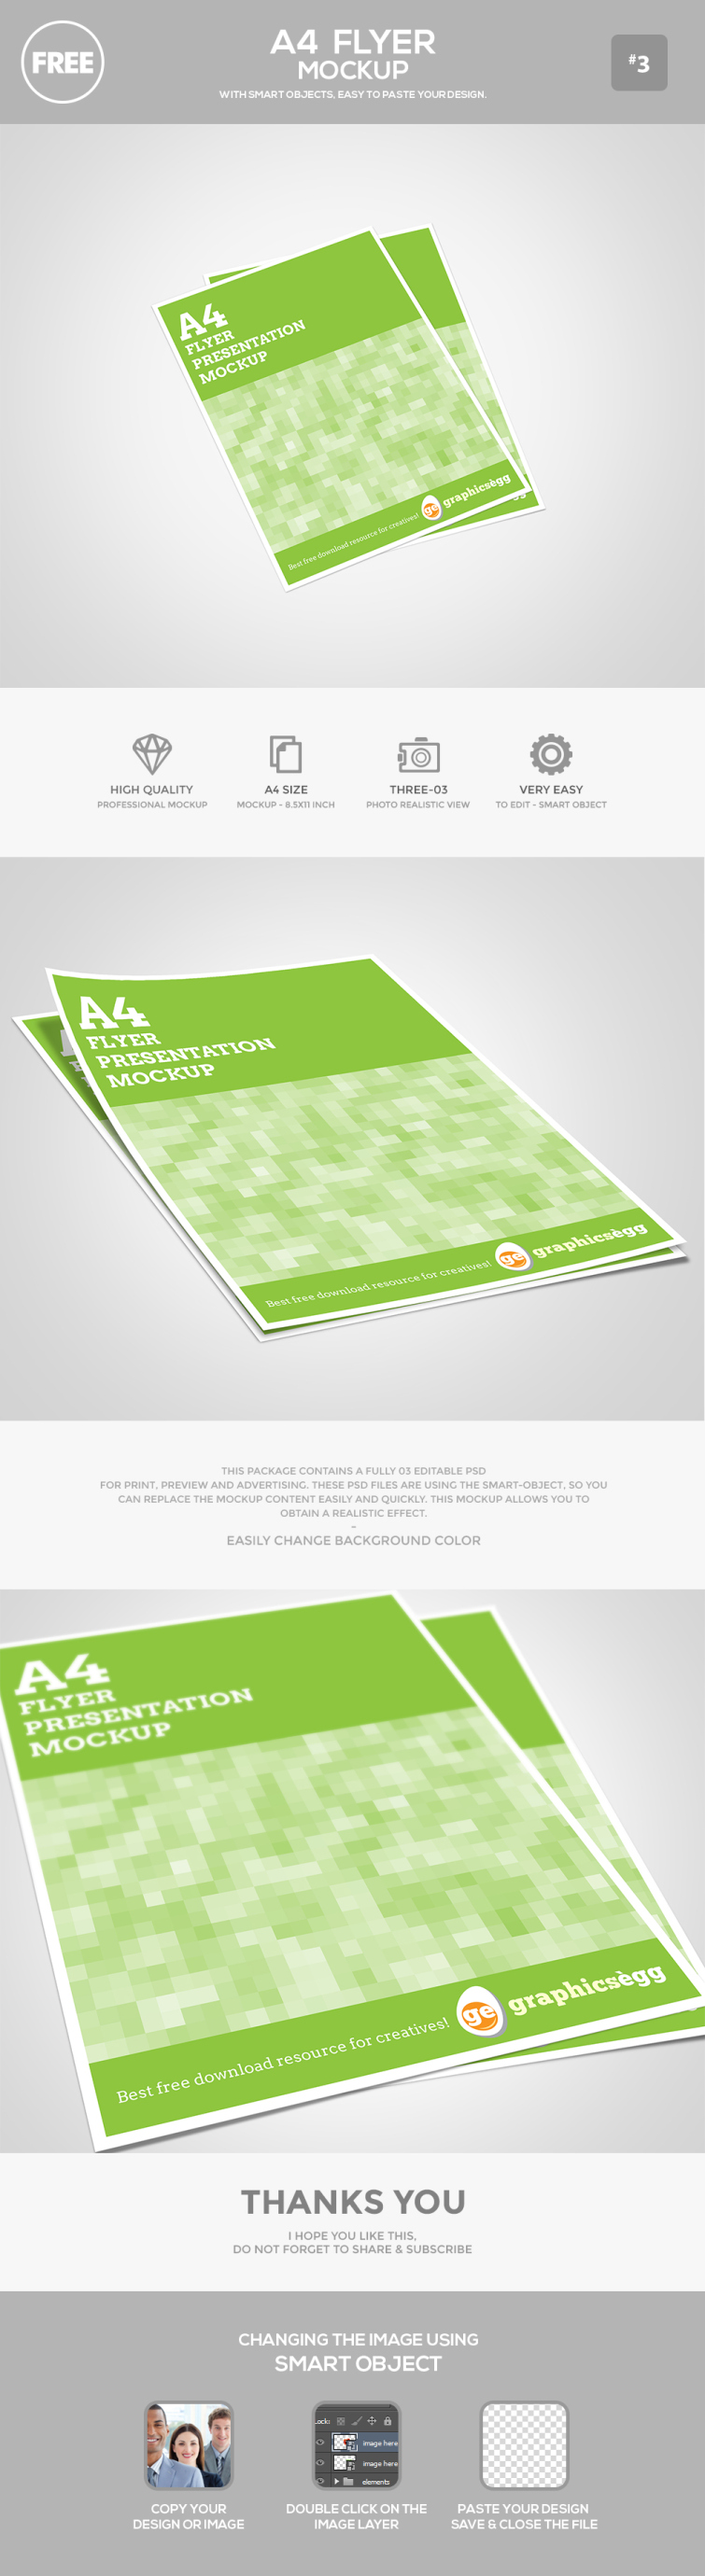 Free A4 Flyer Mockup Psd Graphicsegg Flyer Mockup Psd Flyer Mockup Flyer